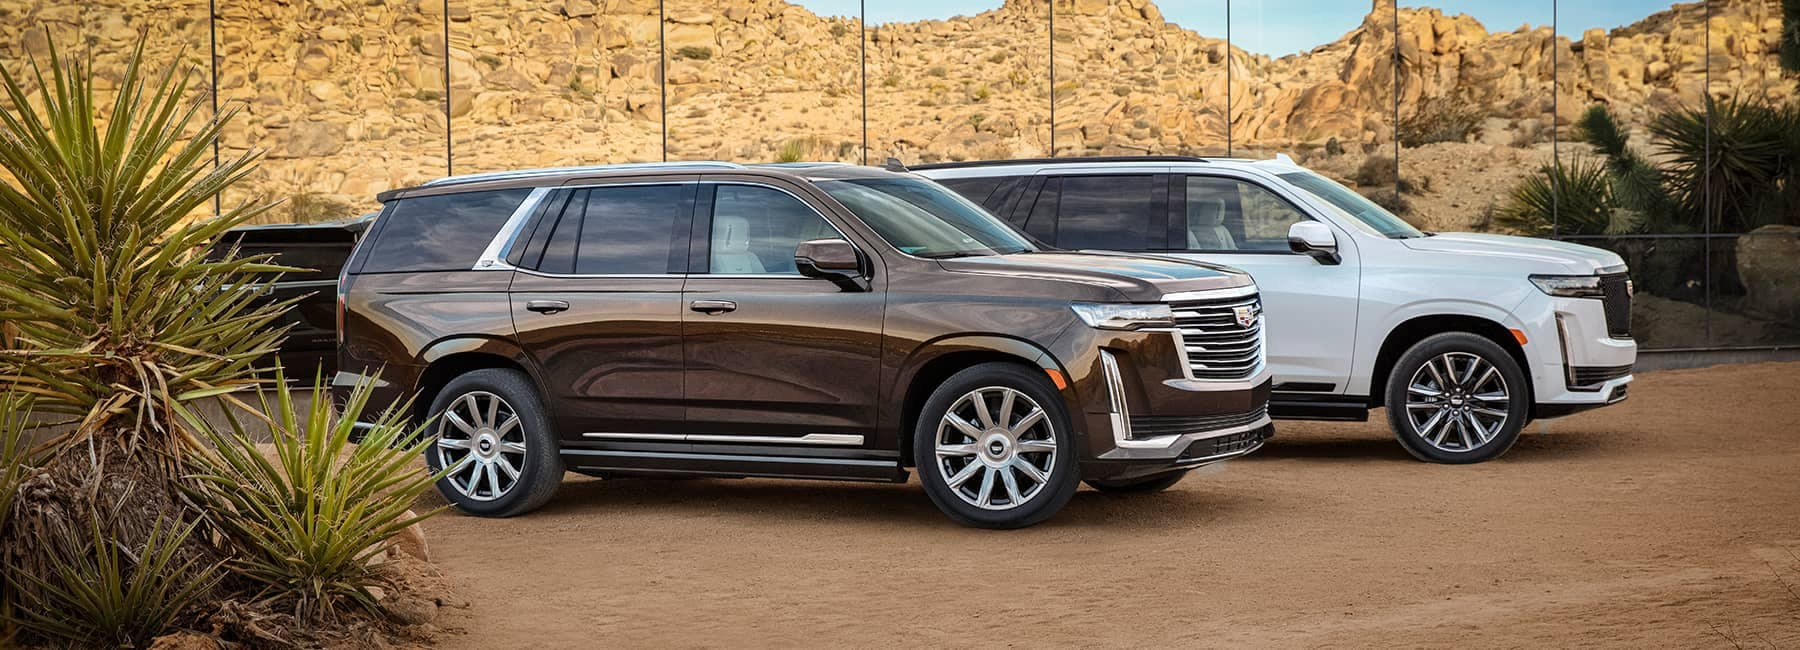 2021 Cadillac Escalade parked in a row